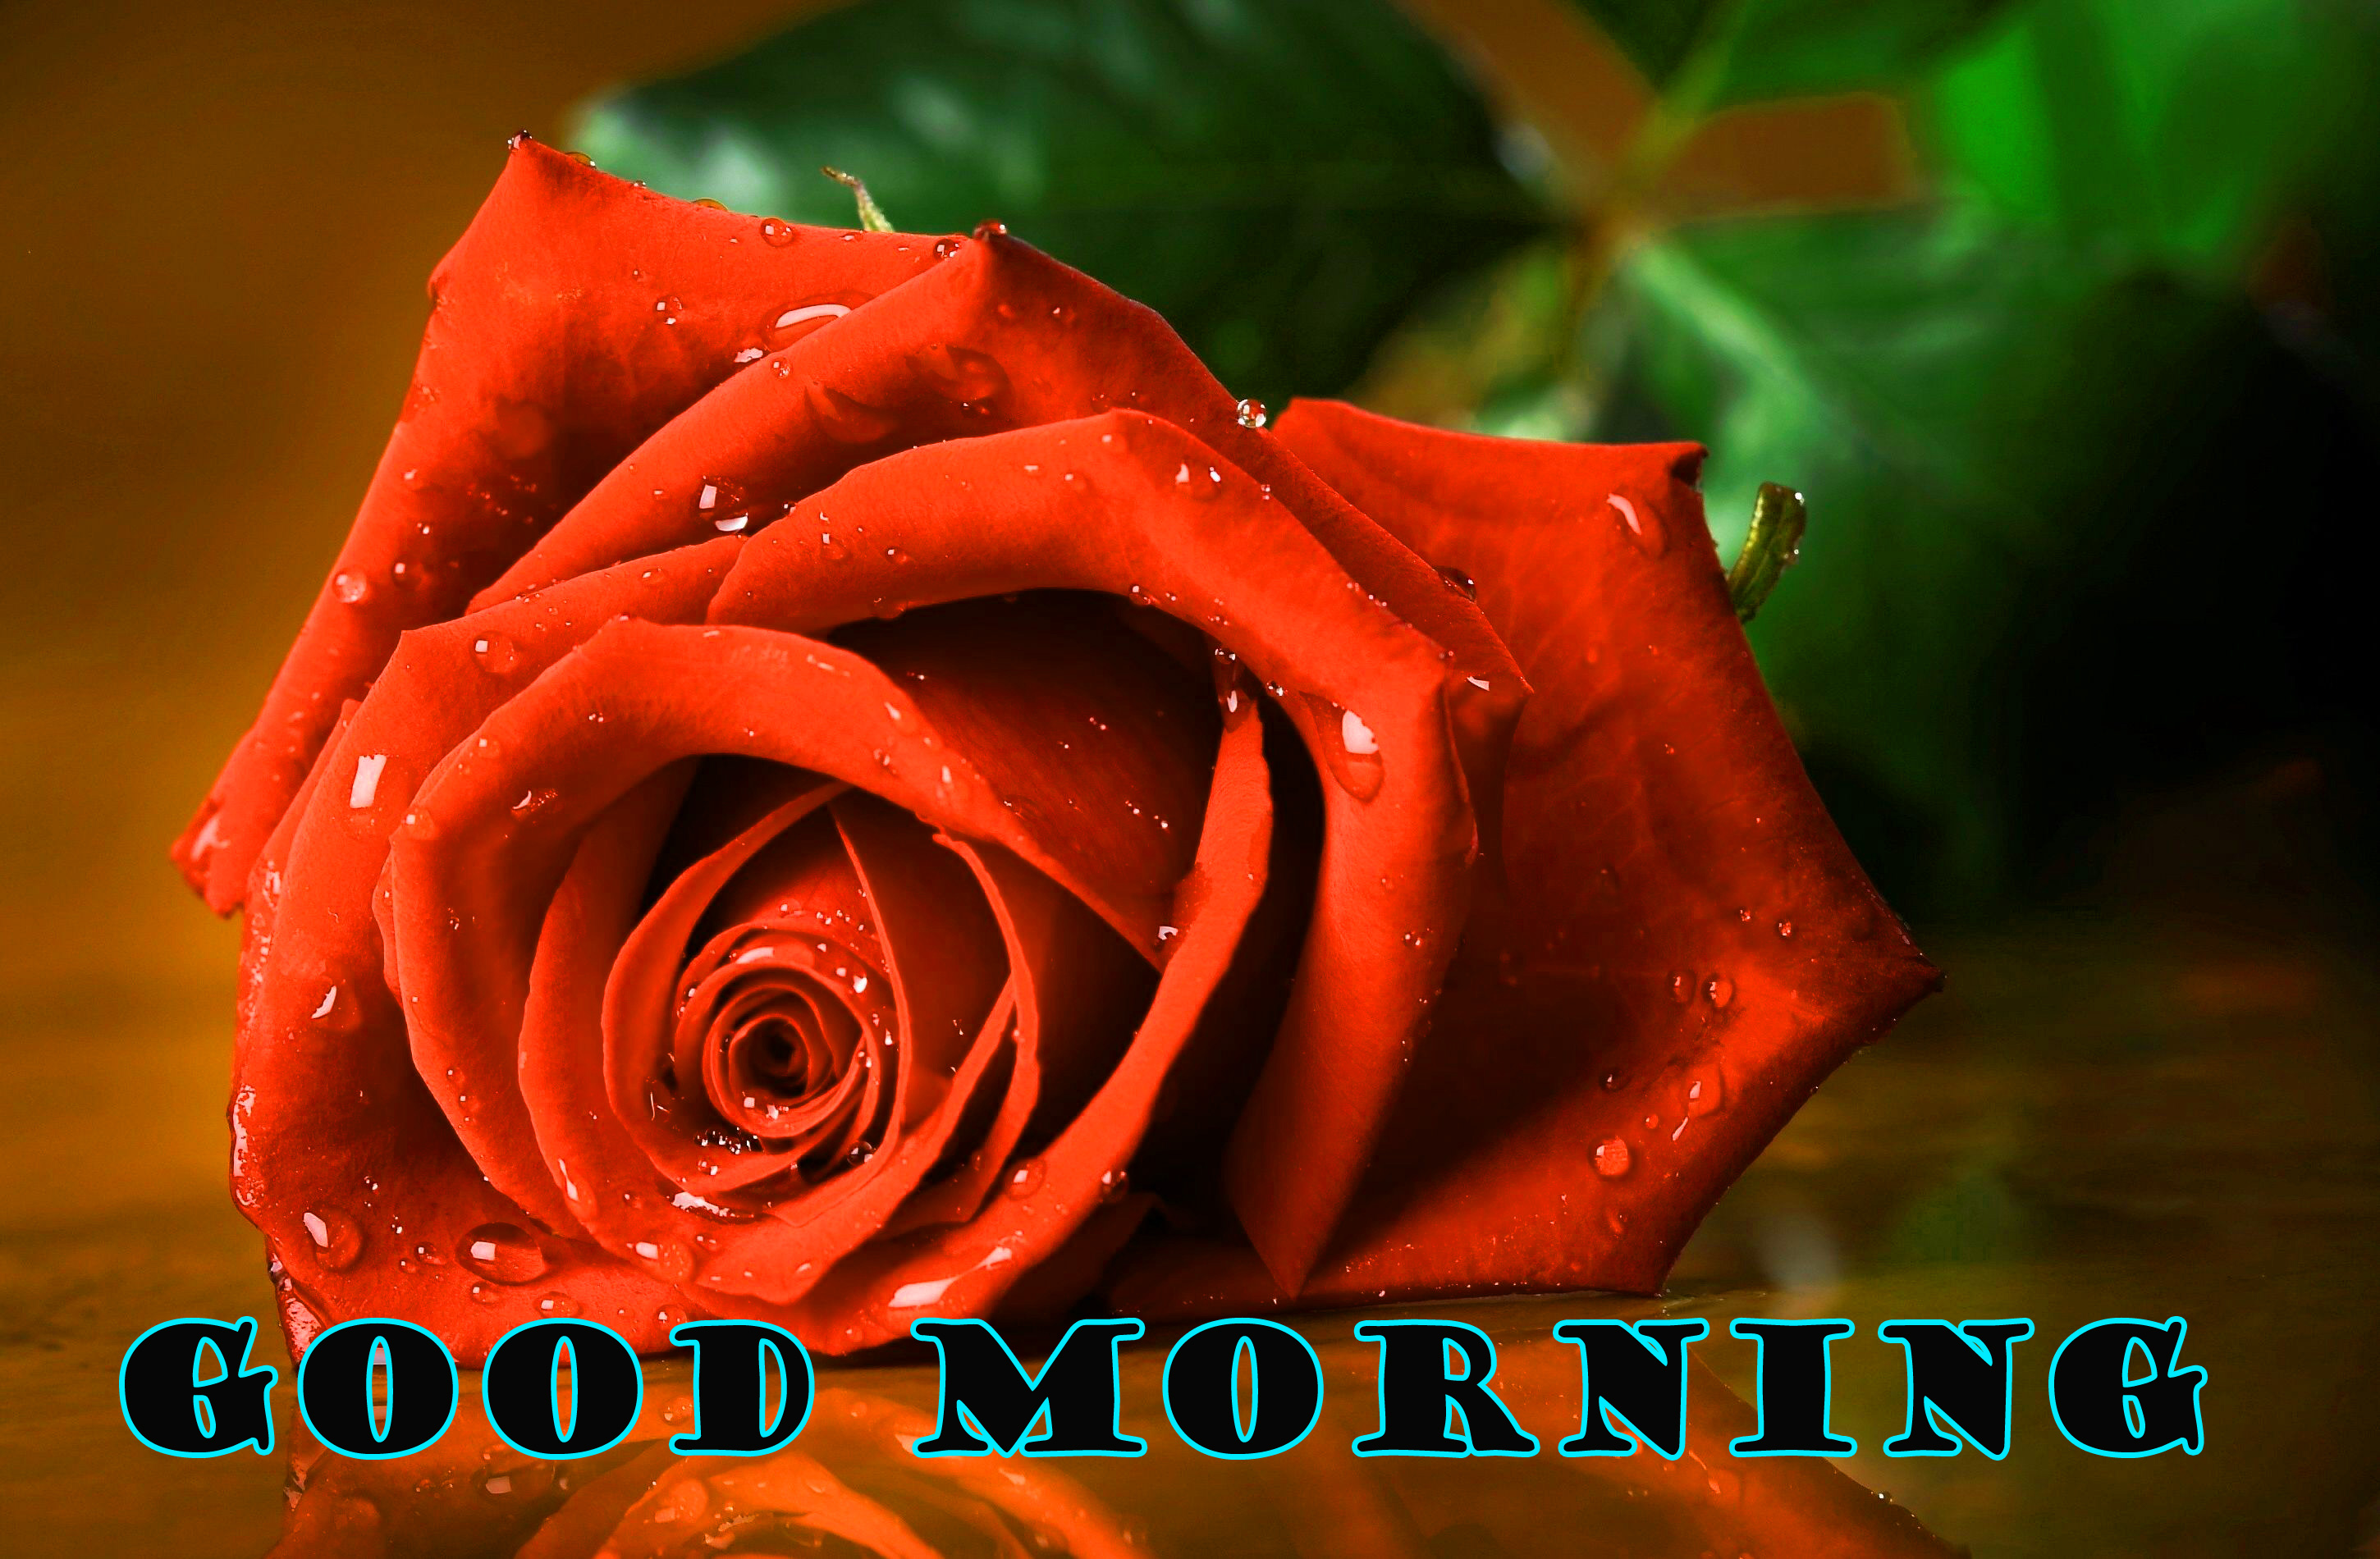 Good Morning Red Rose Photo Images Pictures HD Download